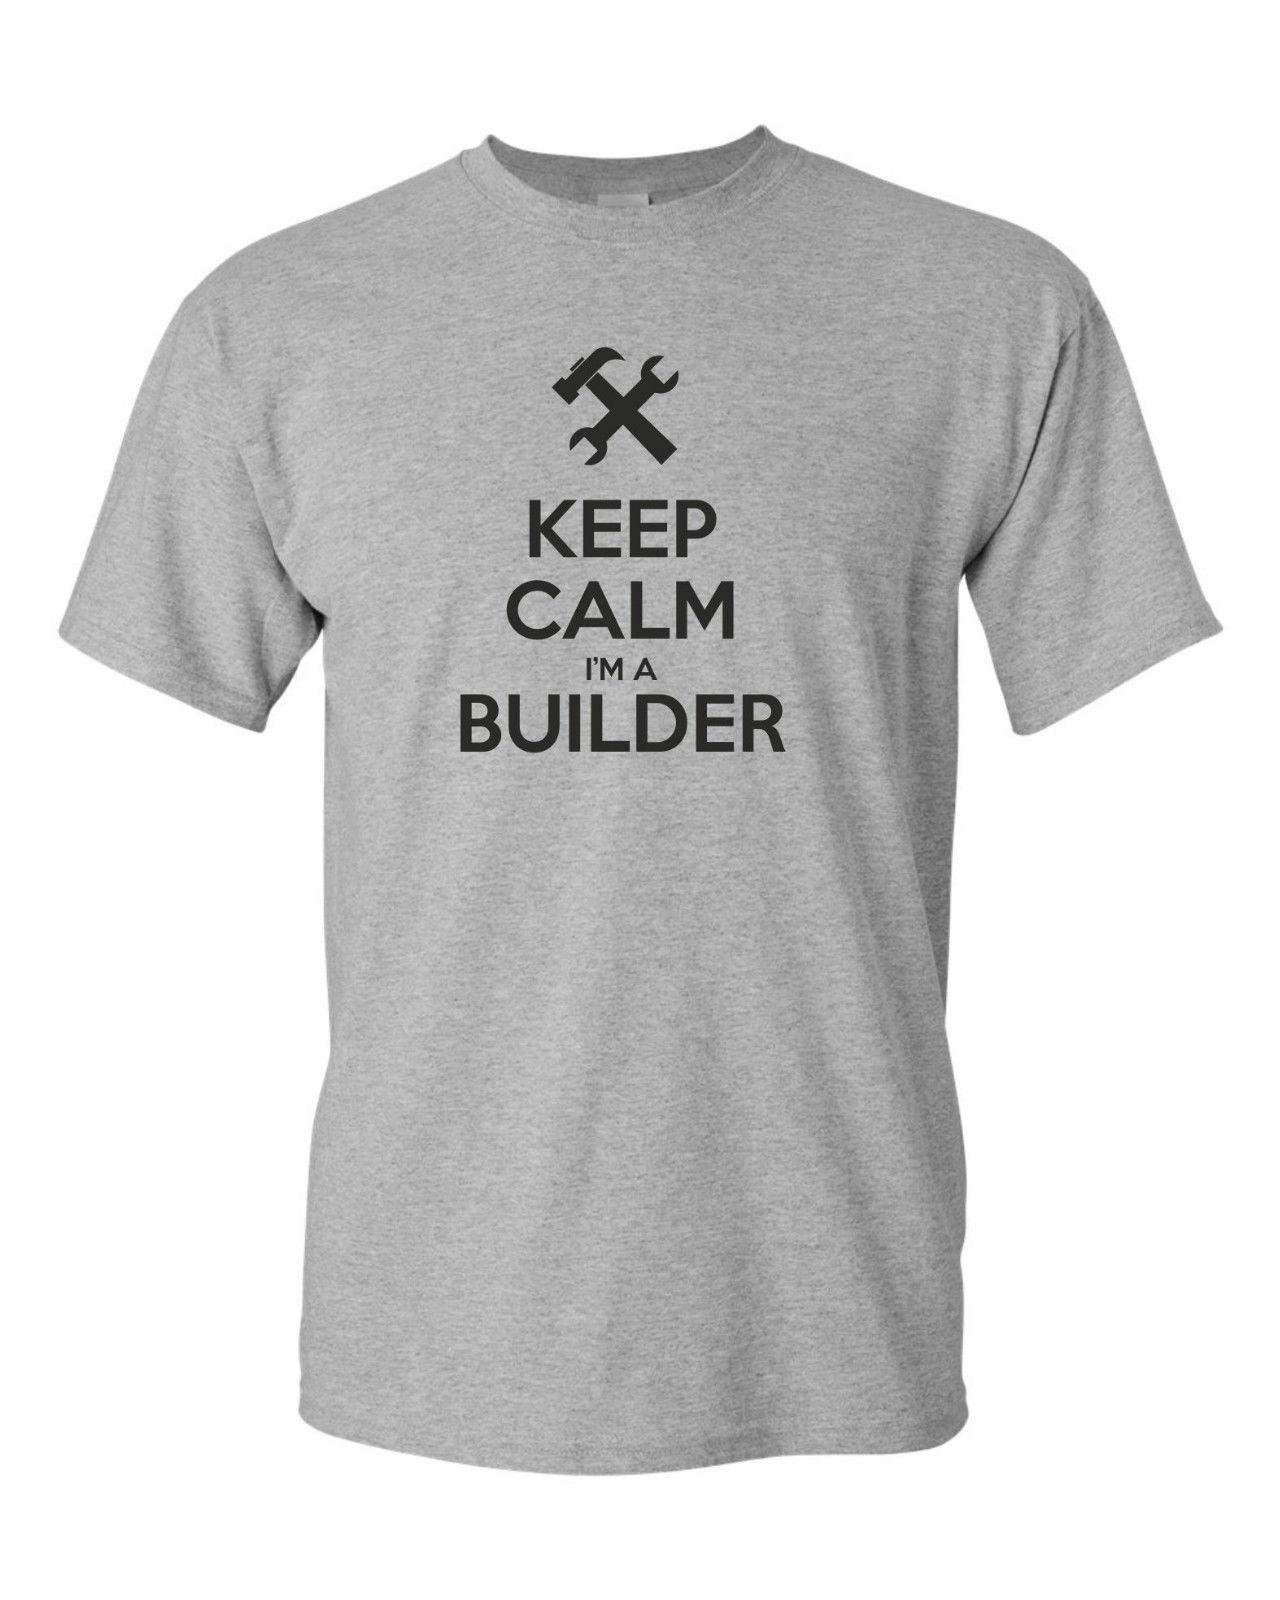 303aedd4c0 KEEP CALM BUILDER BUILD Construction Worker Funny Mens T Shirt Funny Unisex  Casual Tee Gift Offensive Shirts Ringer T Shirts From Elite_direct, ...